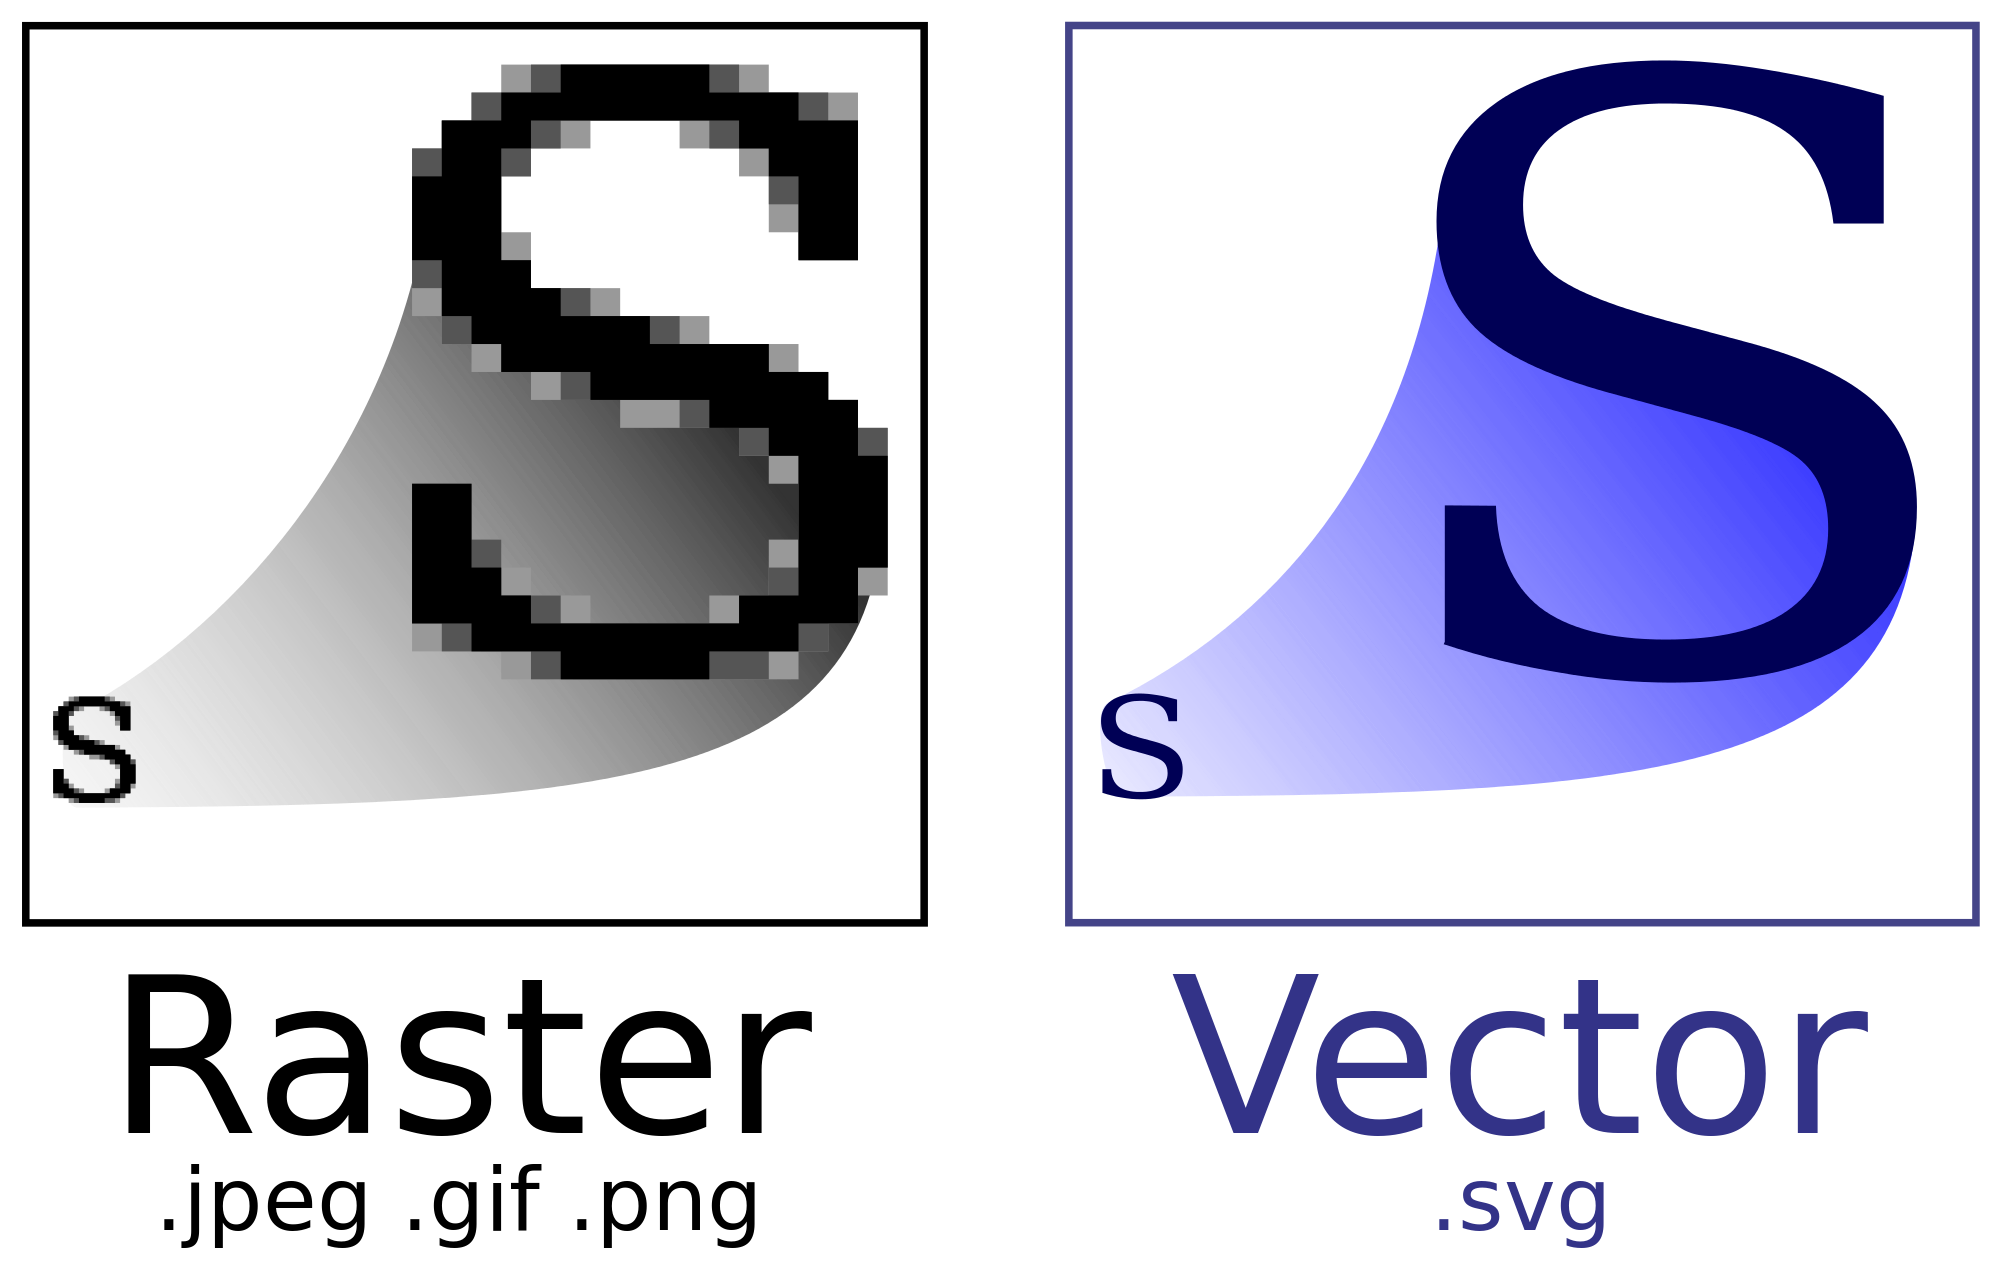 SVG: Scalable Vector Graphics.